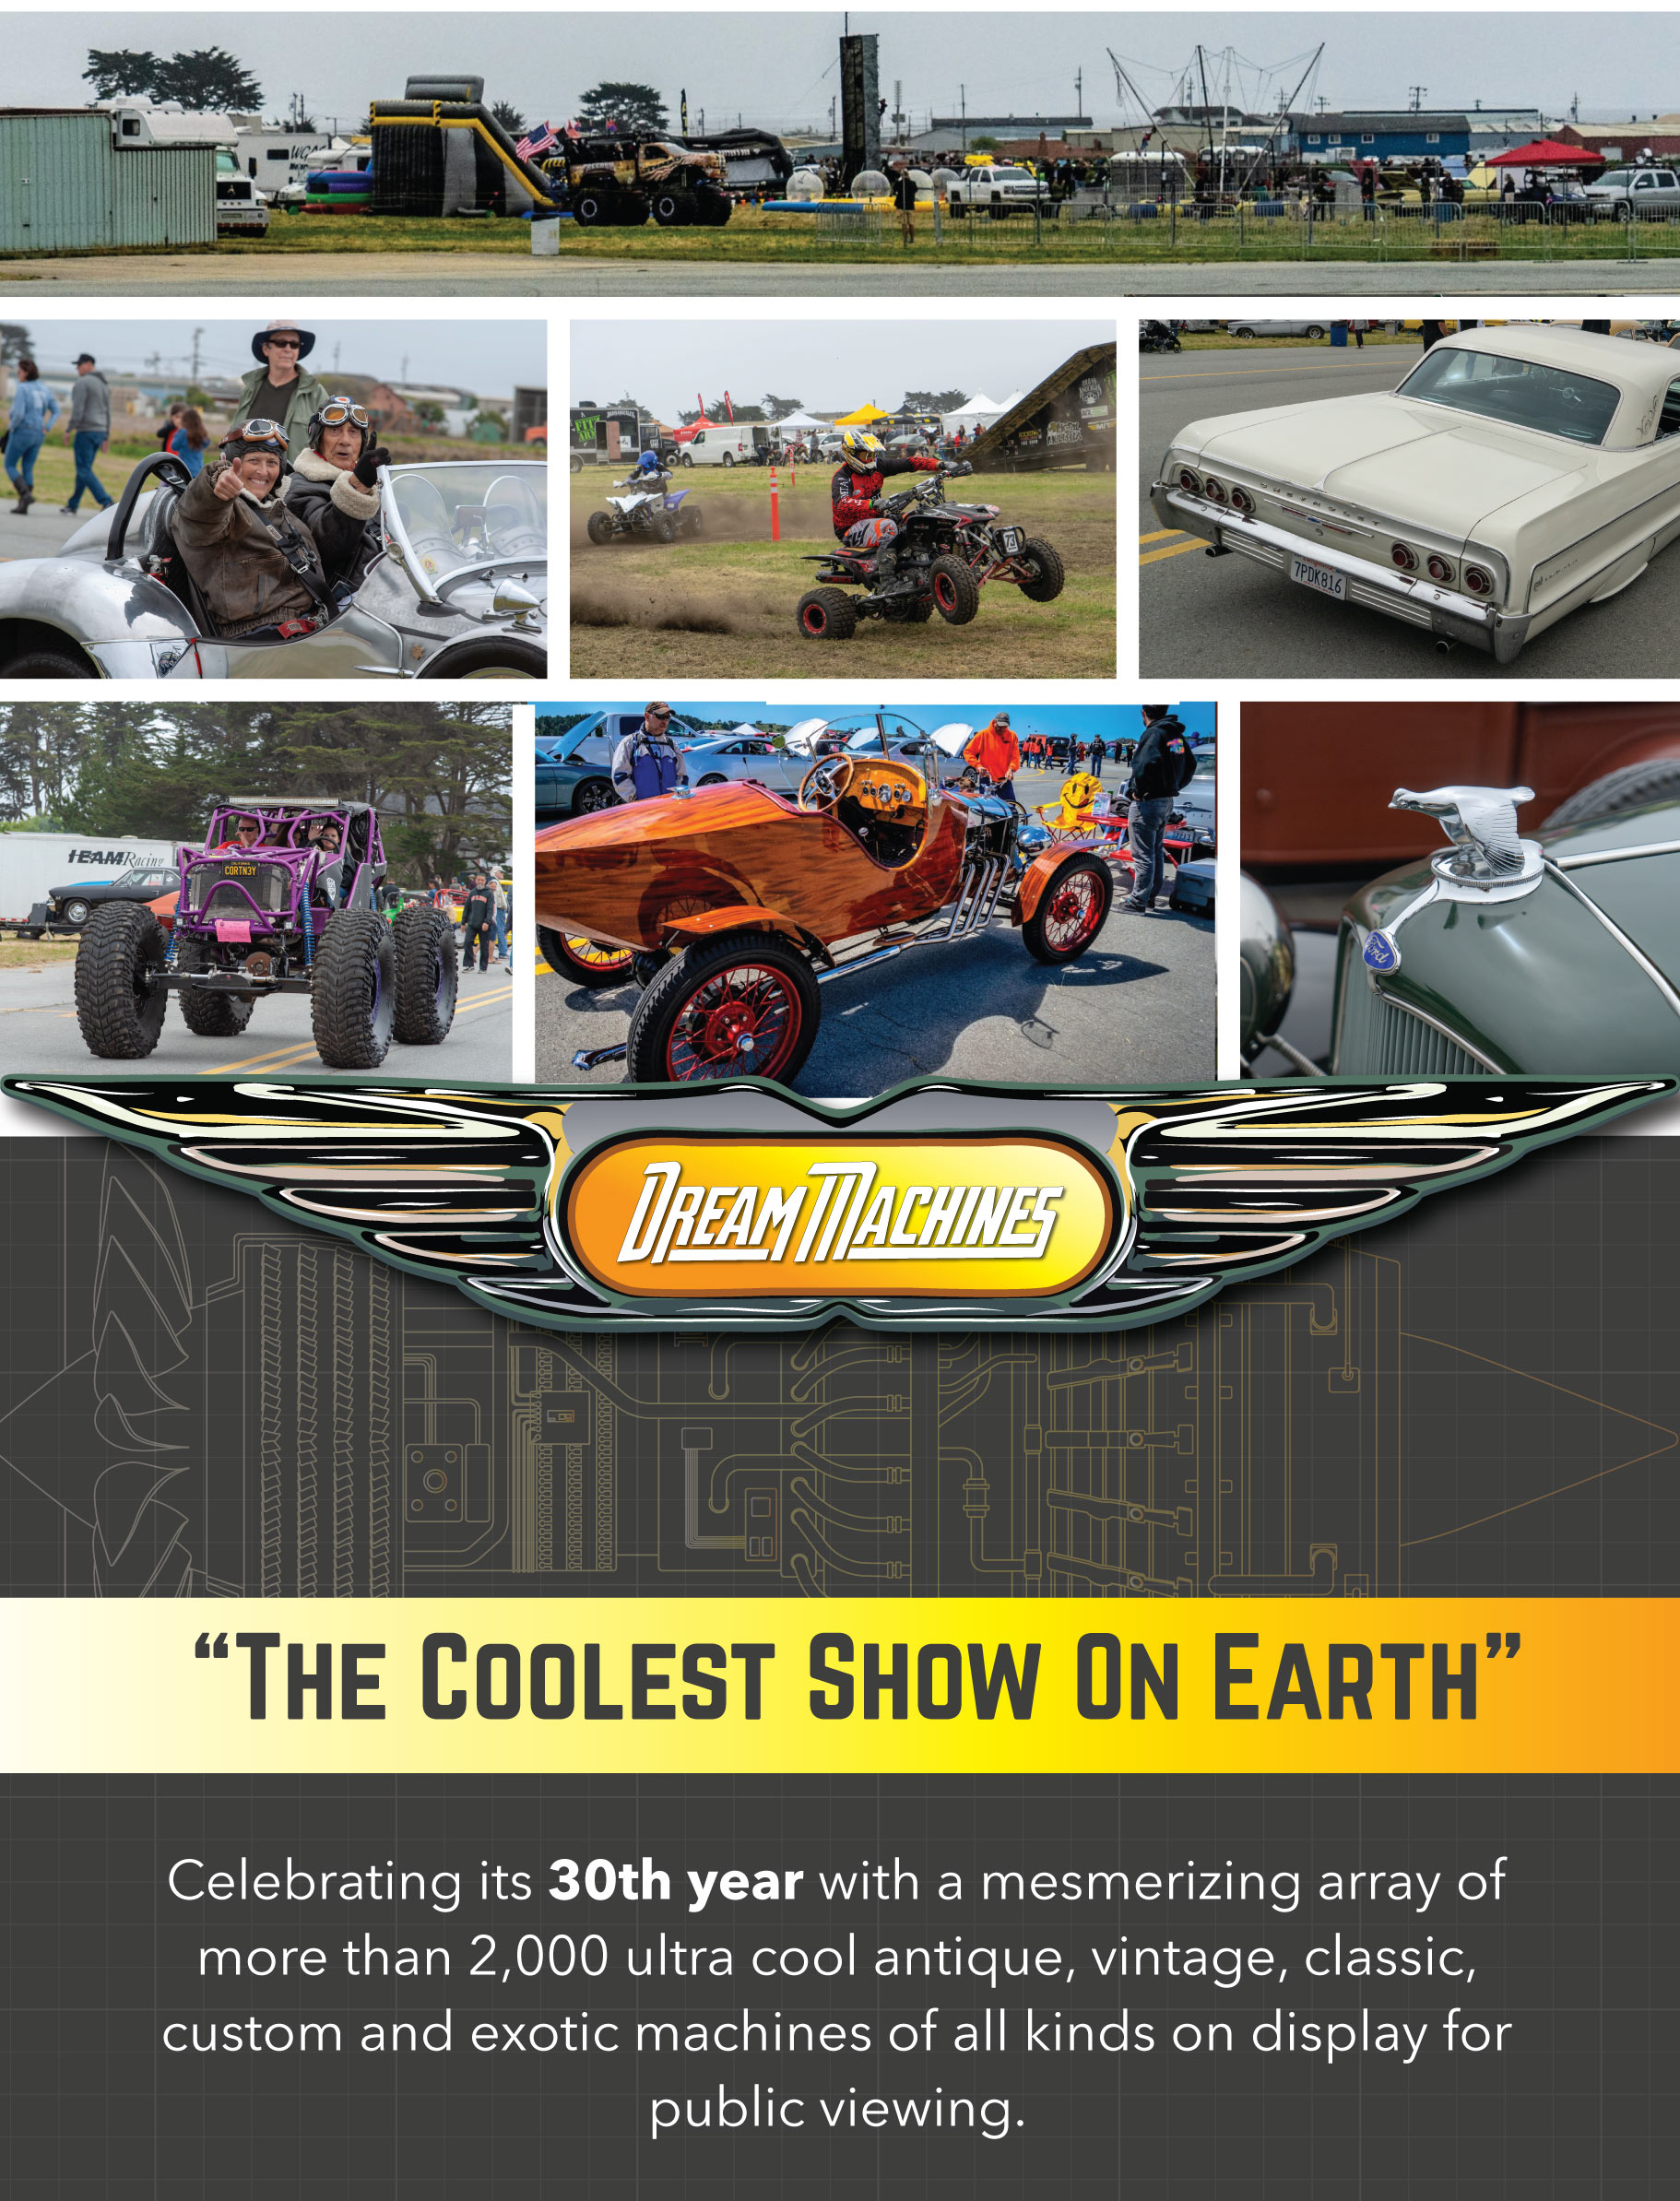 Celebrating its 30th year with a mesmerizing array of more than 2,000 ultra cool antique, vintage, classic, custom and exotic machines of all kinds on display for public viewing.